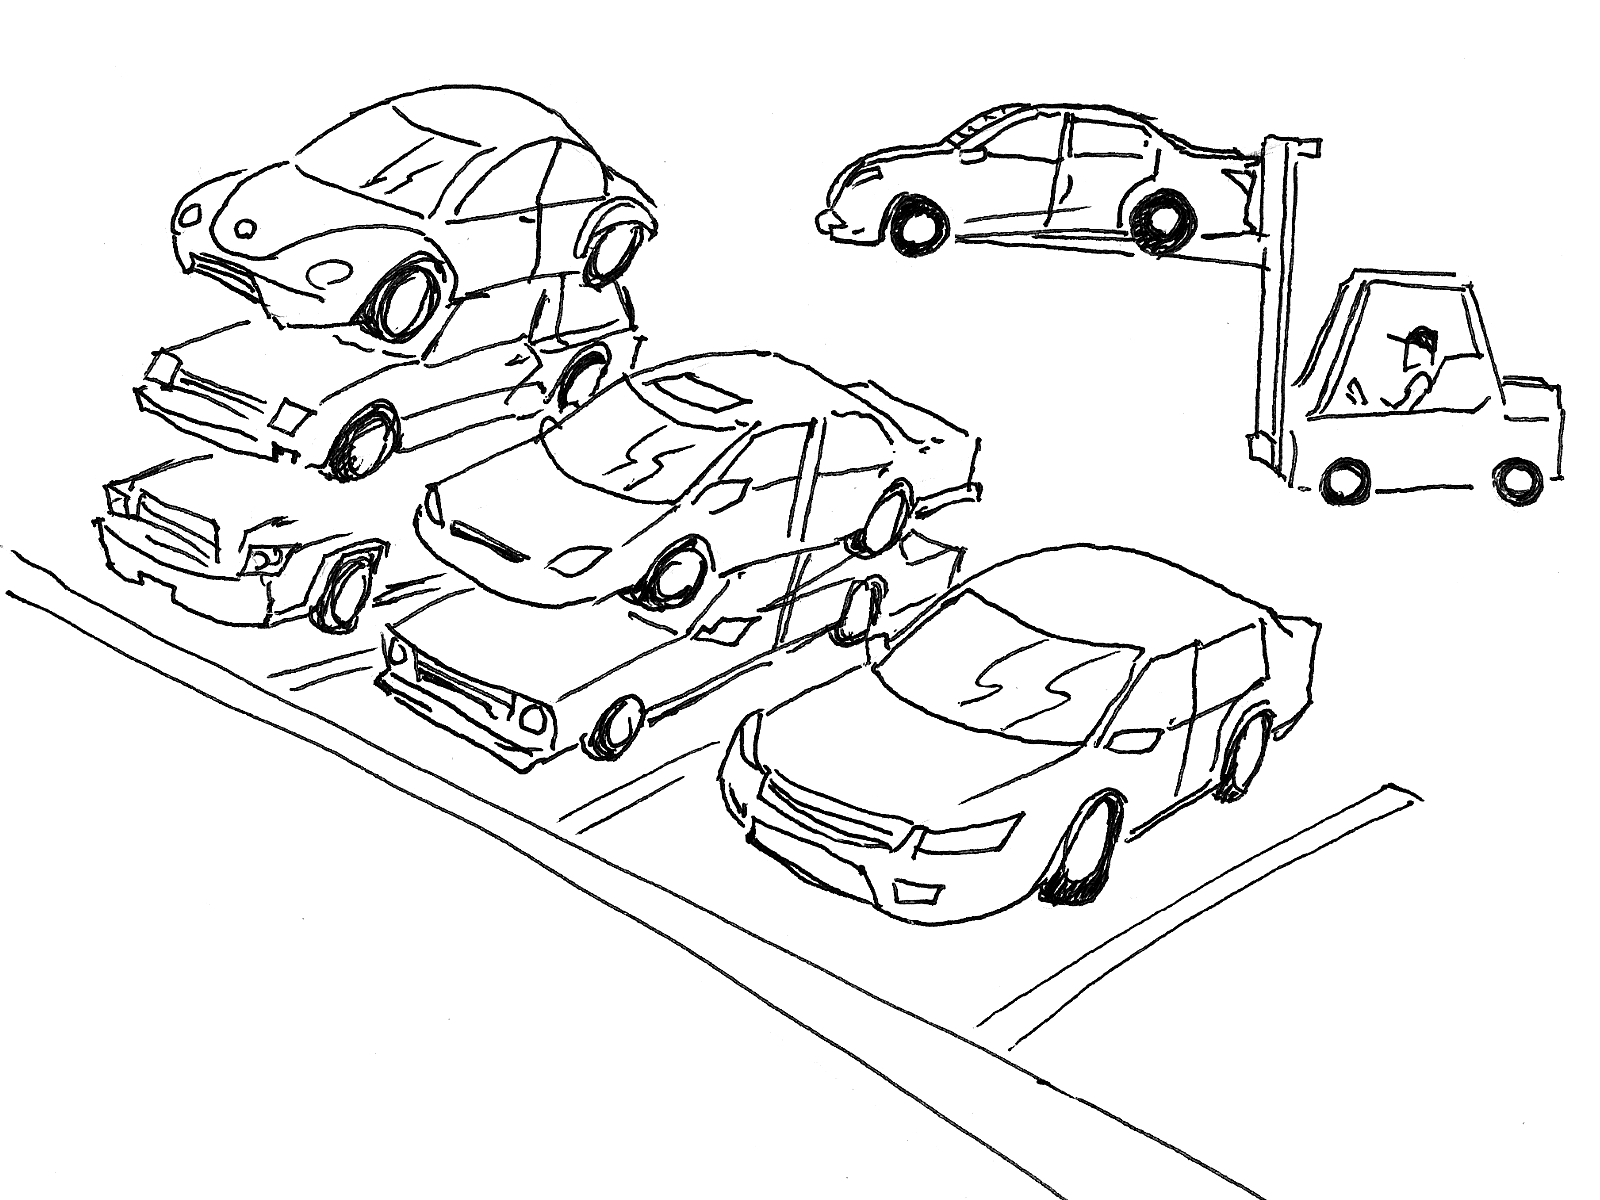 Commuters should consider carpooling:  Students can help with the parking situation